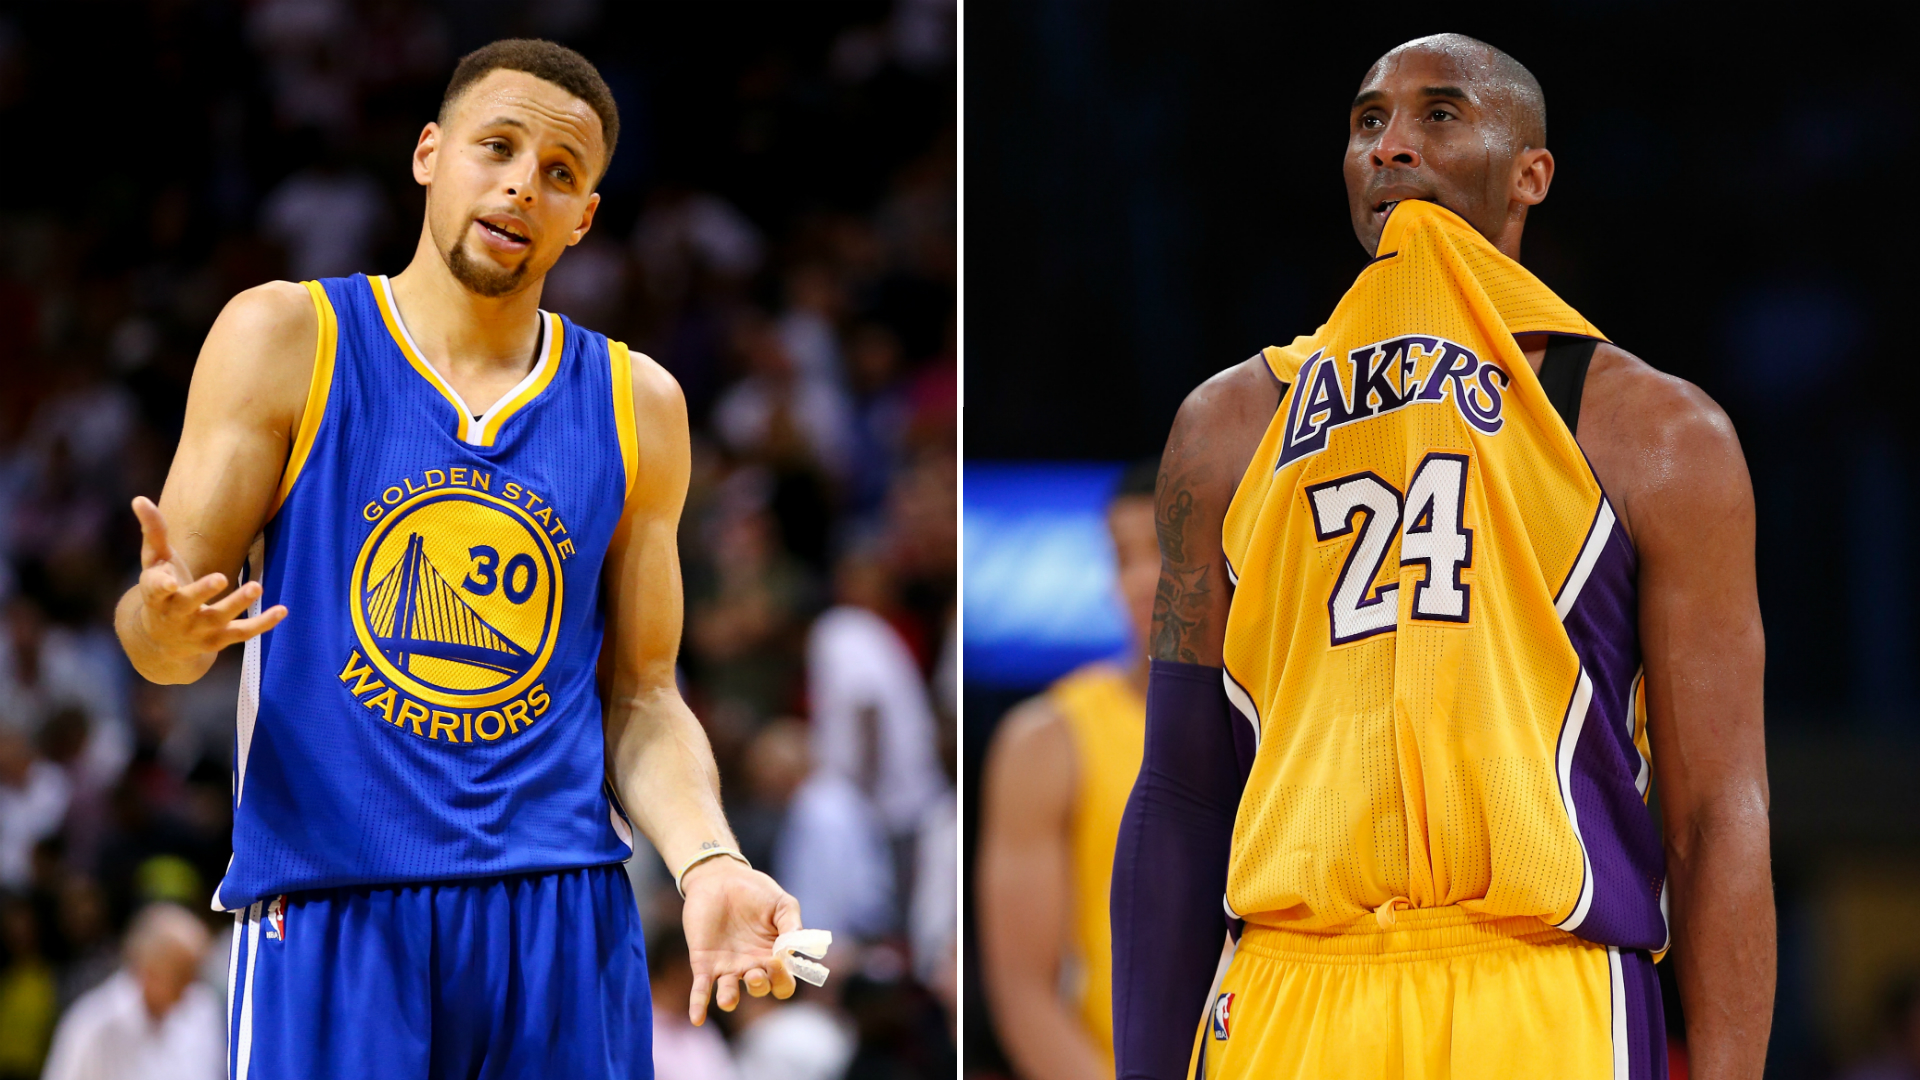 Sorry Steph Curry, fans paying twice as much to watch Kobe's final game | NBA | Sporting News